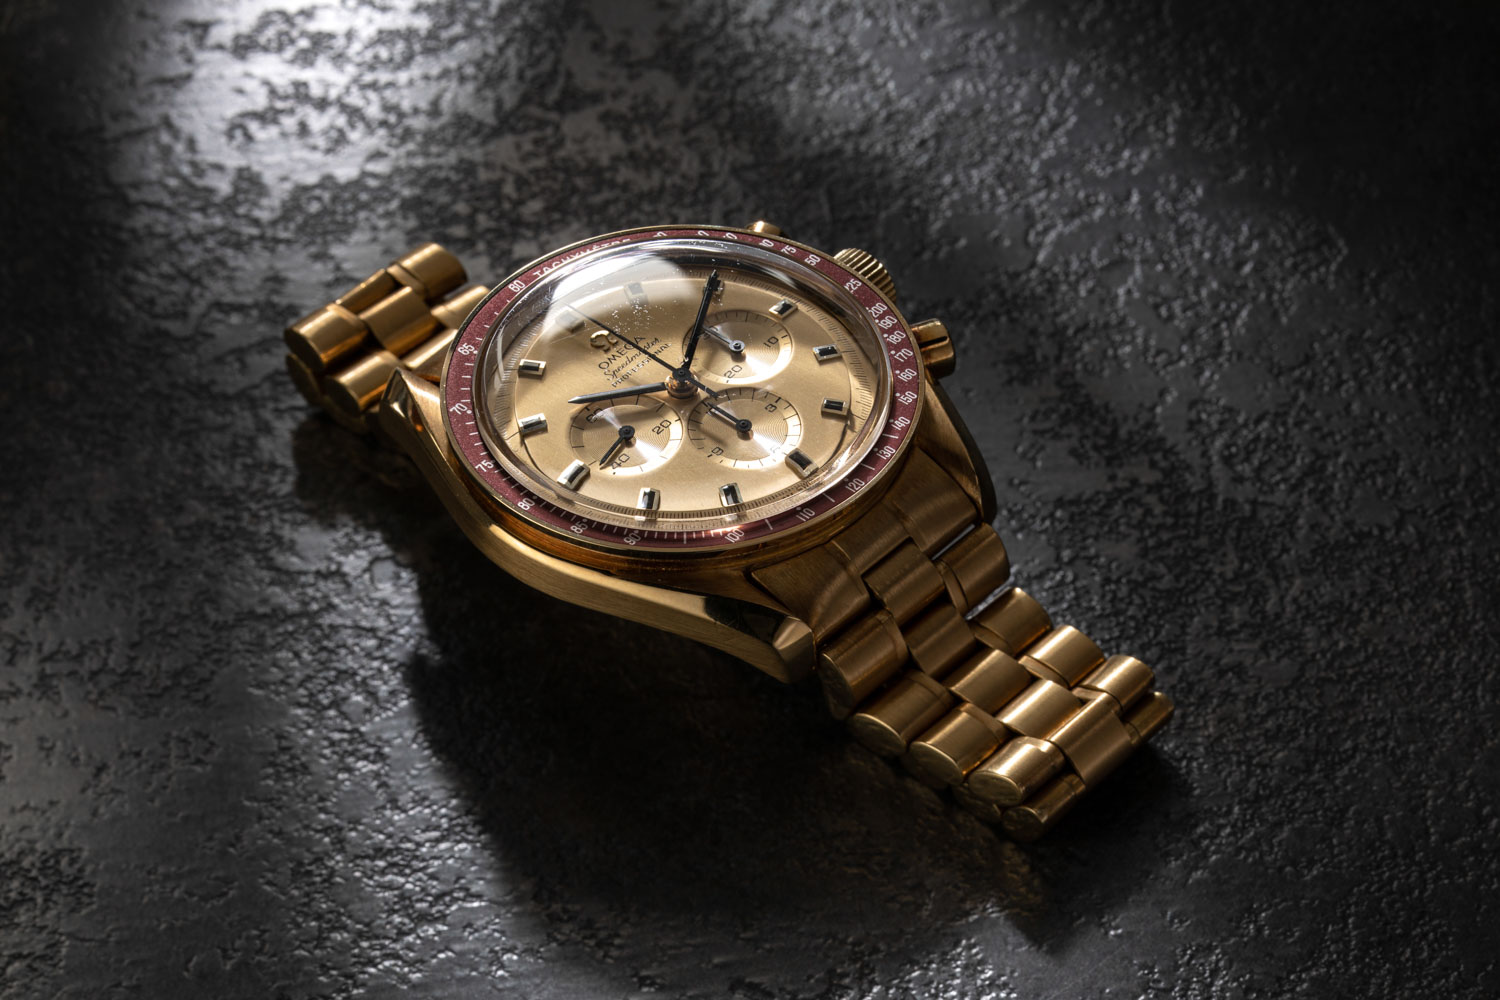 1969 Yellow Gold Omega Speedmaster Tribute to Apollo XI Reference BA 145.022 was produced in a run of 1,014 pieces (©Revolution)